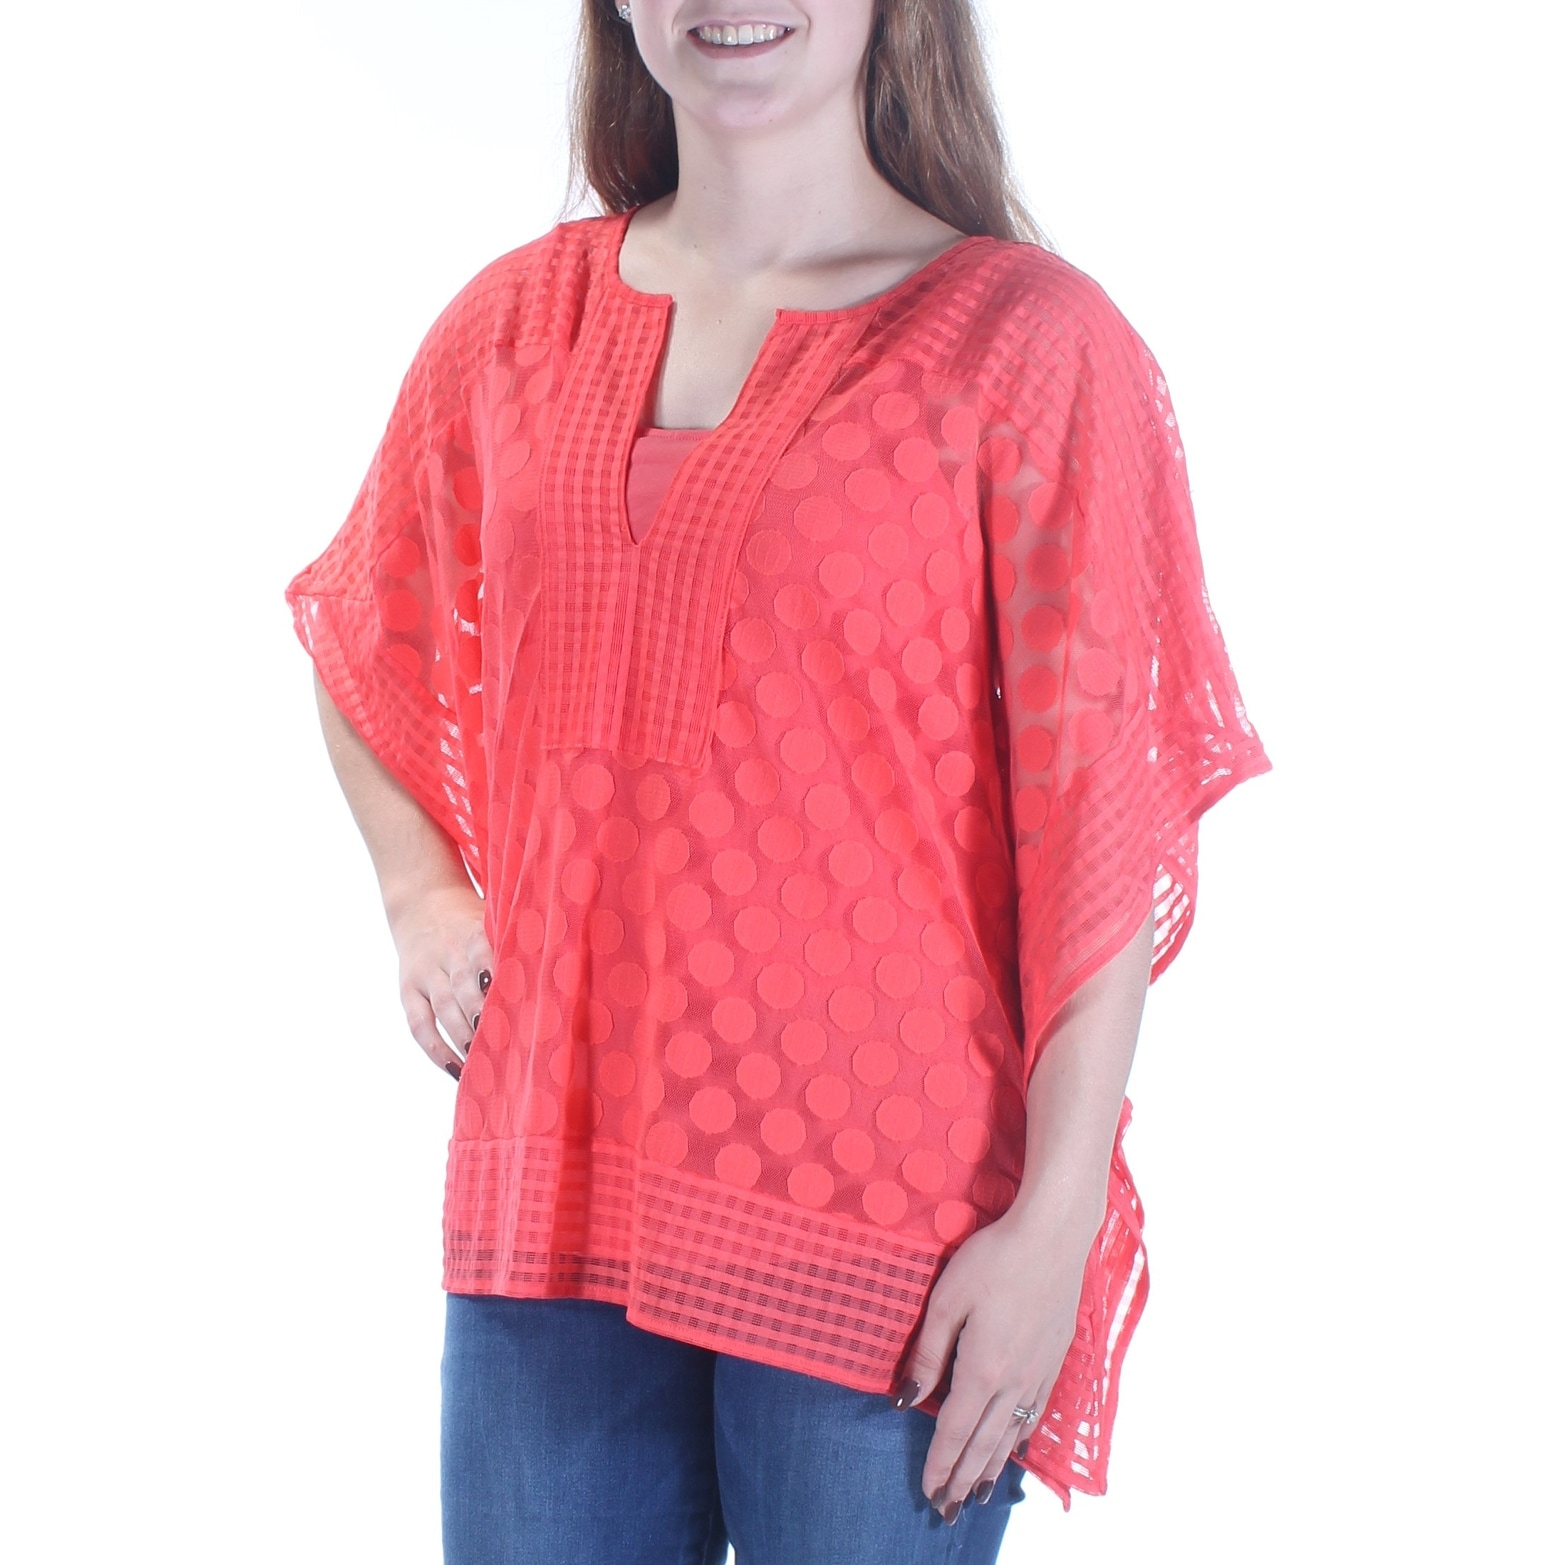 b752a8a5812 Pink Alfani Tops | Find Great Women's Clothing Deals Shopping at Overstock